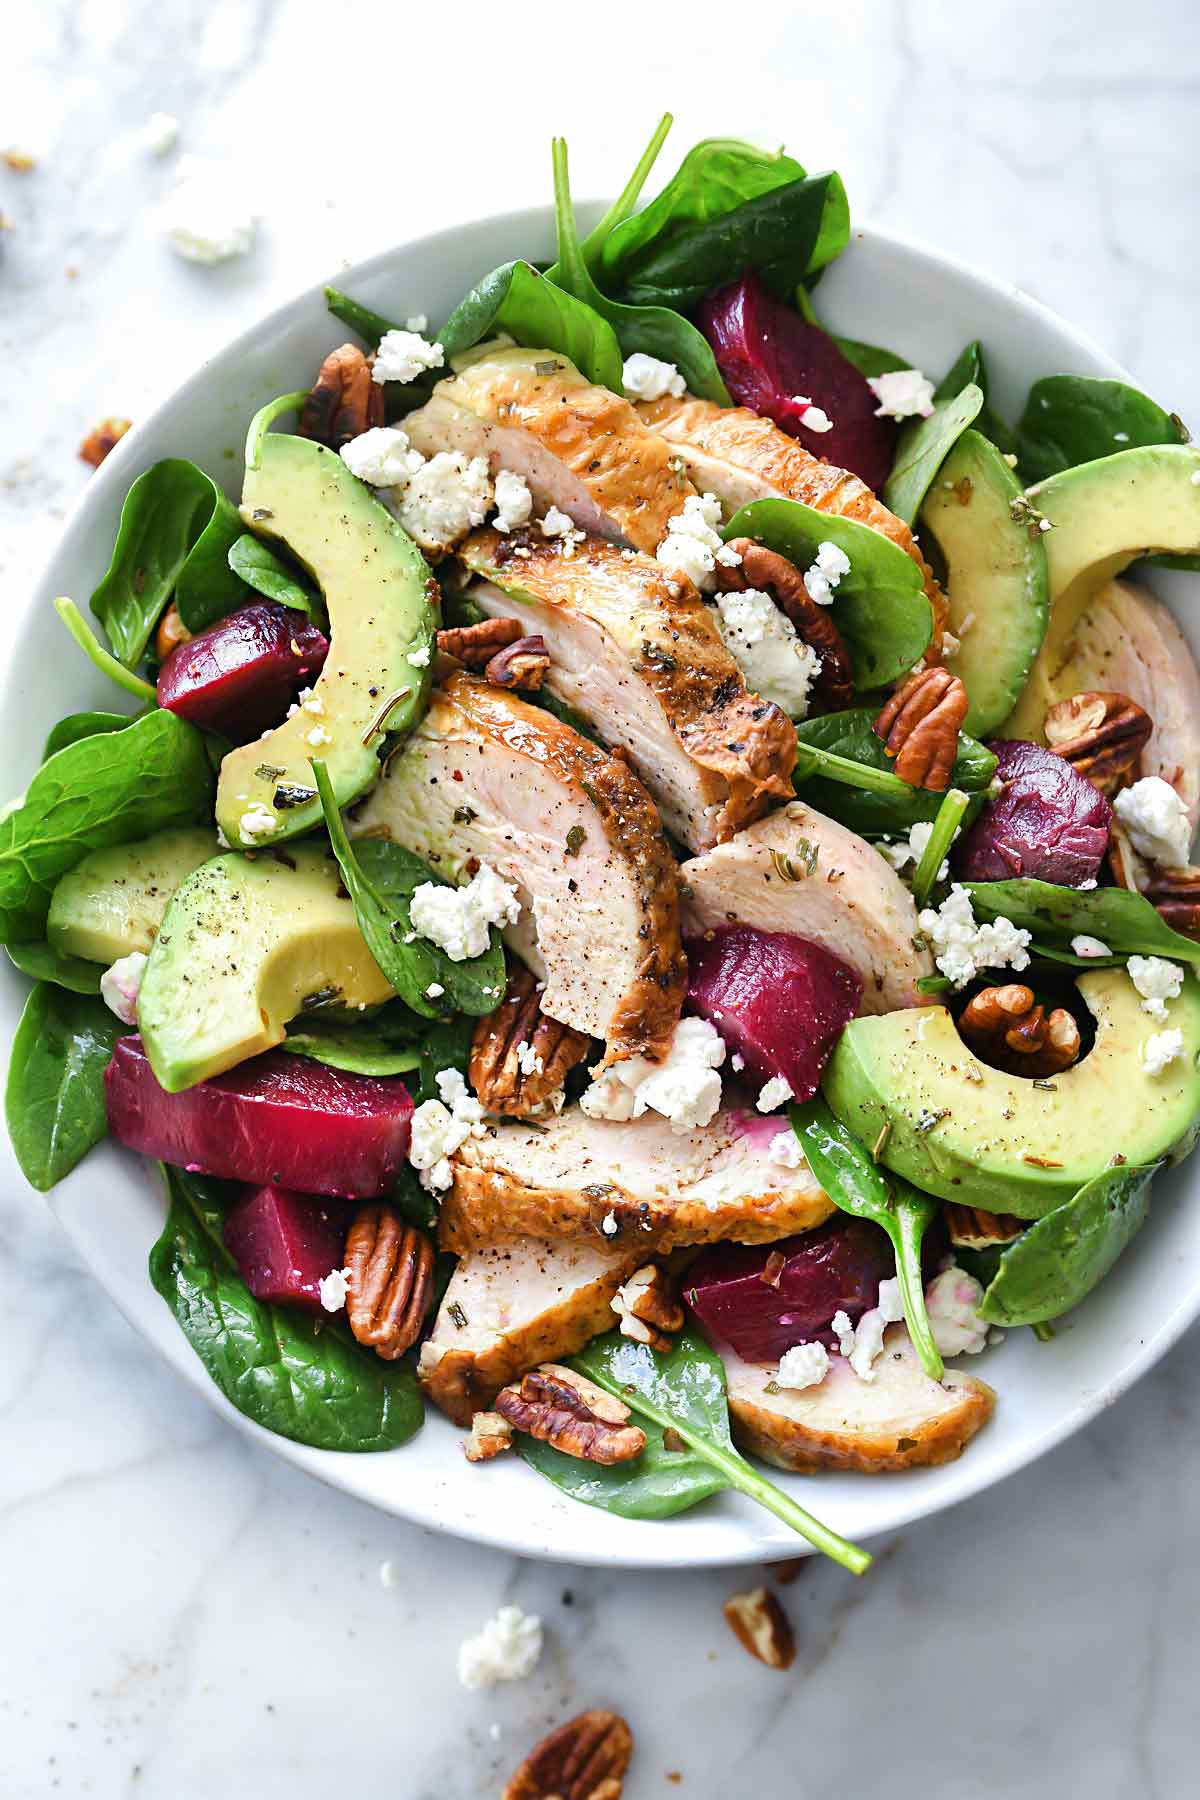 Roasted Beet, Avocado and Goat Cheese Spinach Salad with Chicken 38